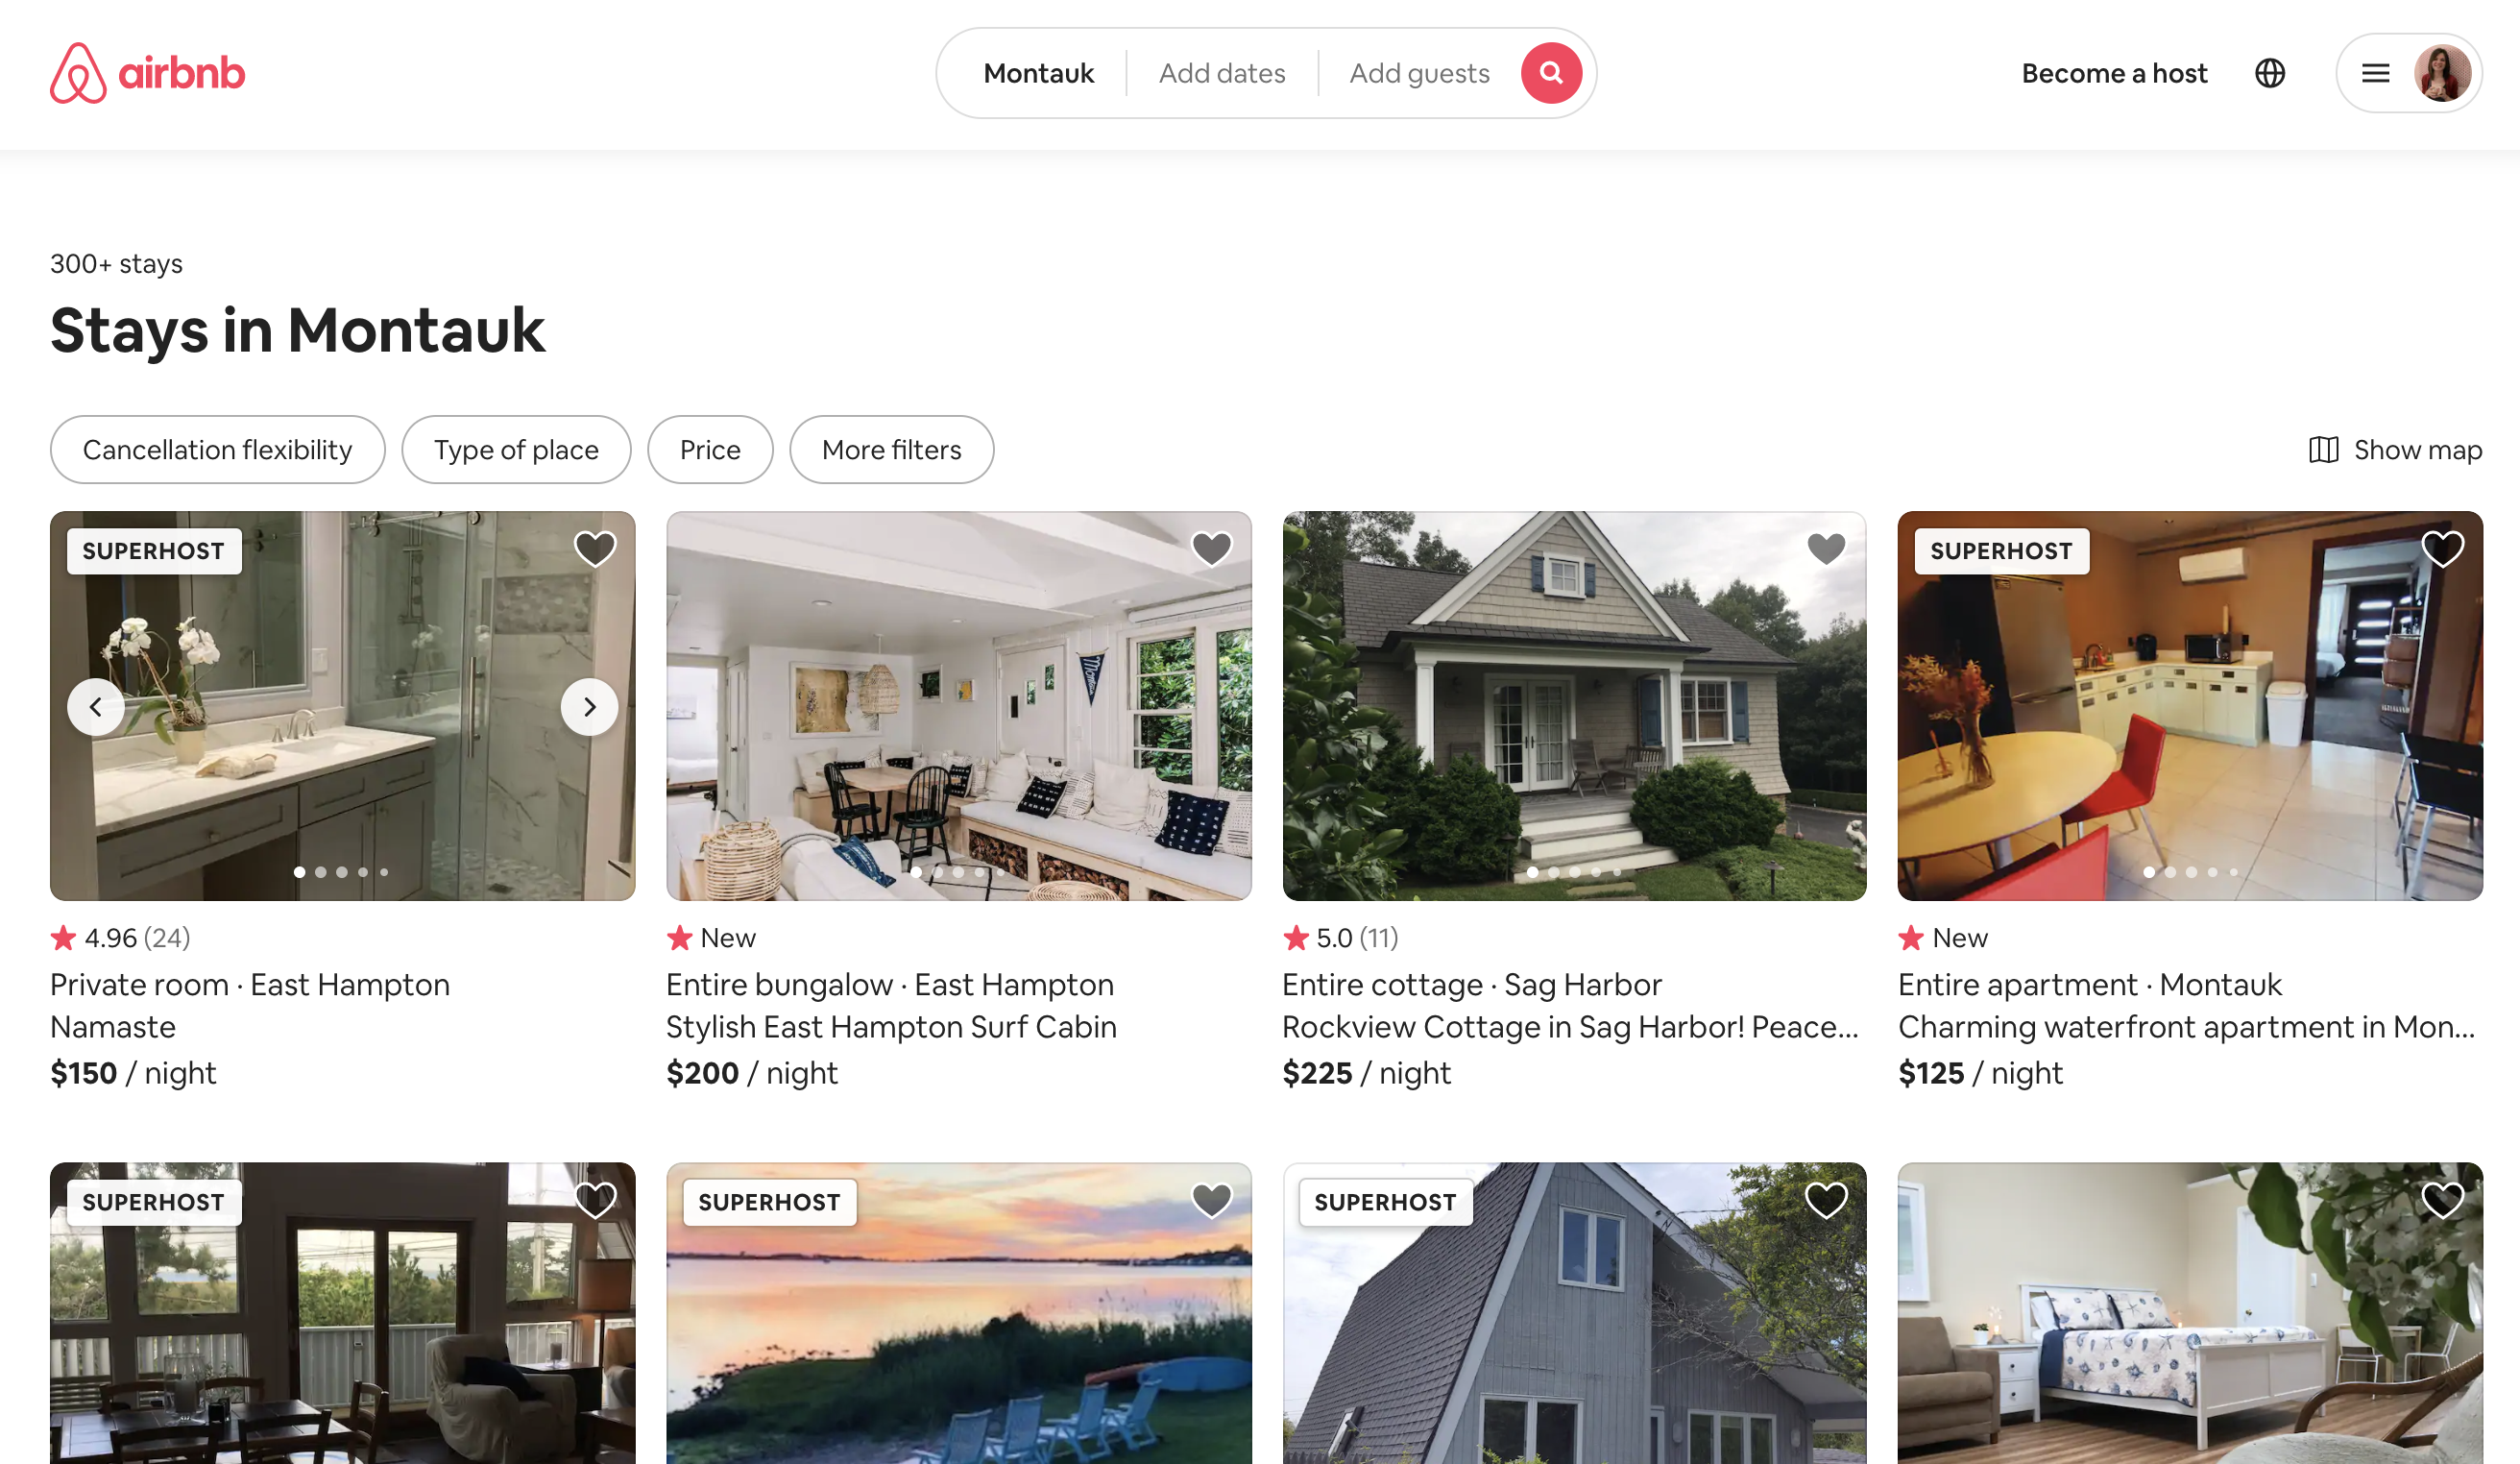 screenshot from Airbnb website showing new listing label on search page